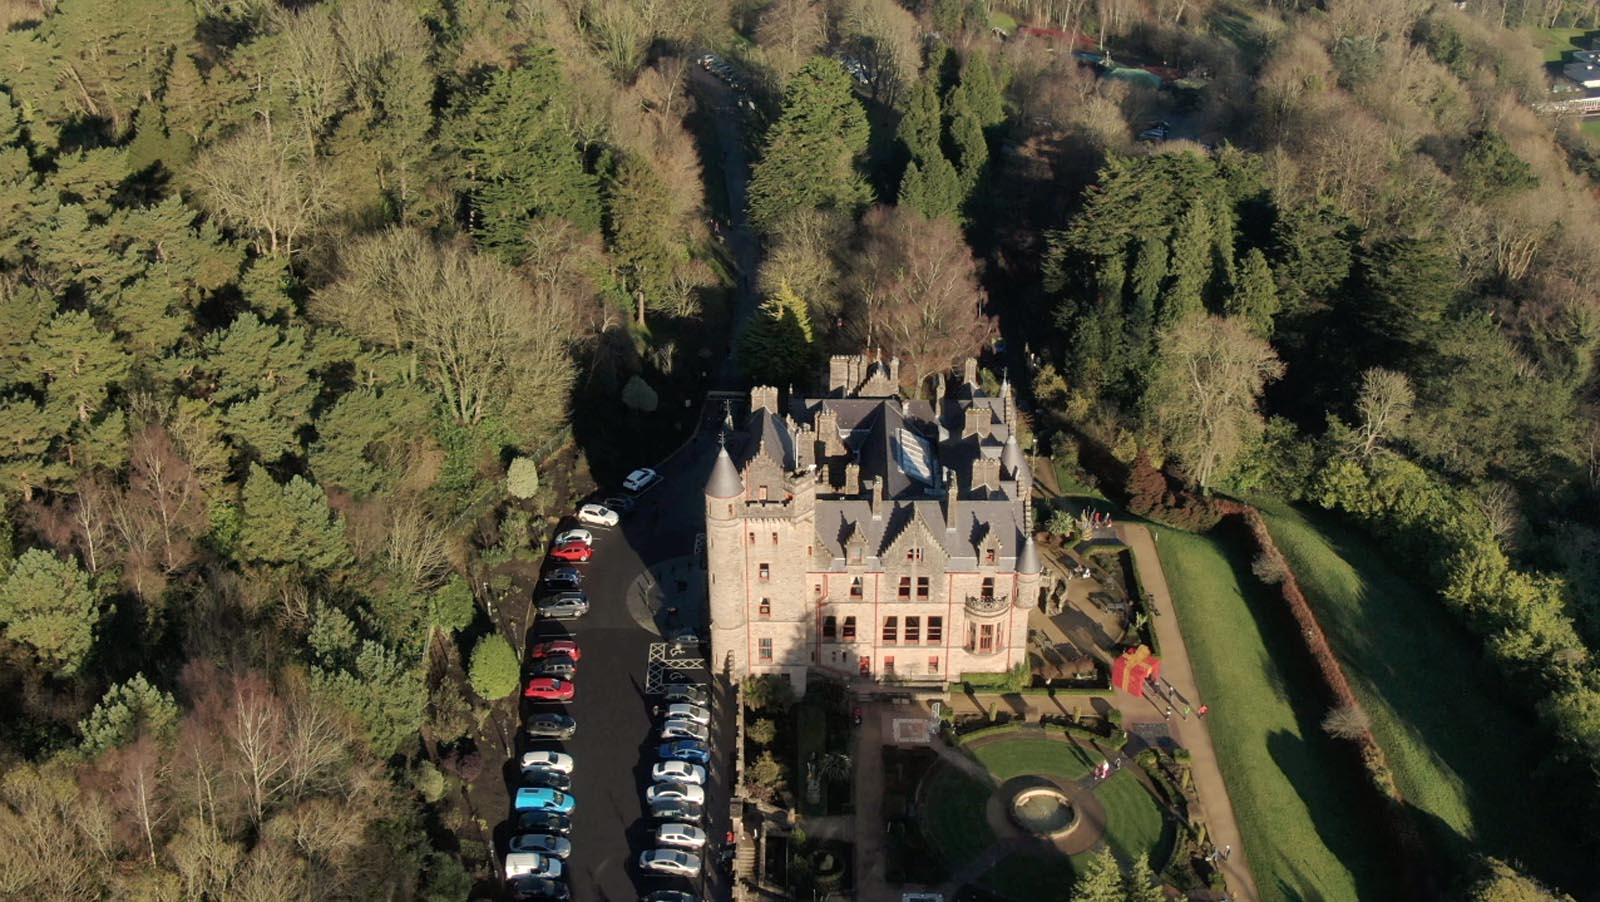 Aerial drone photography and video production services Dublin and Ireland portfolio - screenshot 3 of Belfast Castle 2 video